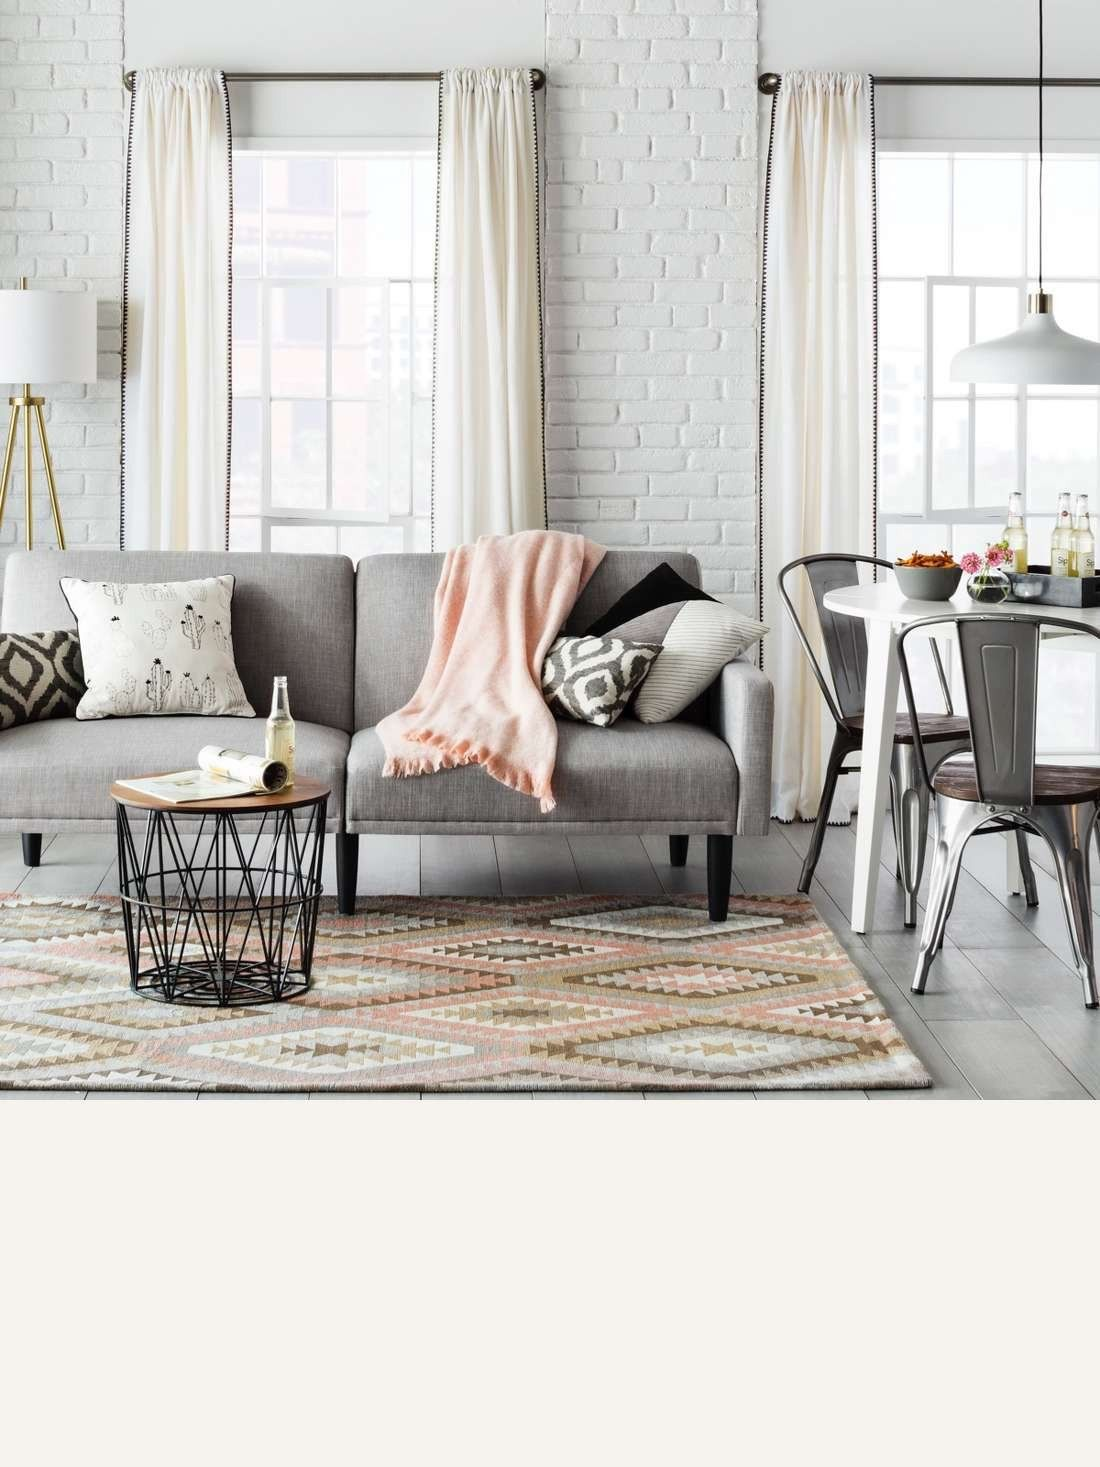 Design My Living Room Online Free Awesome Sofas Sectionals Tar Living Room Grey Grey Furniture Living Room Couches Living Room Design my living room free